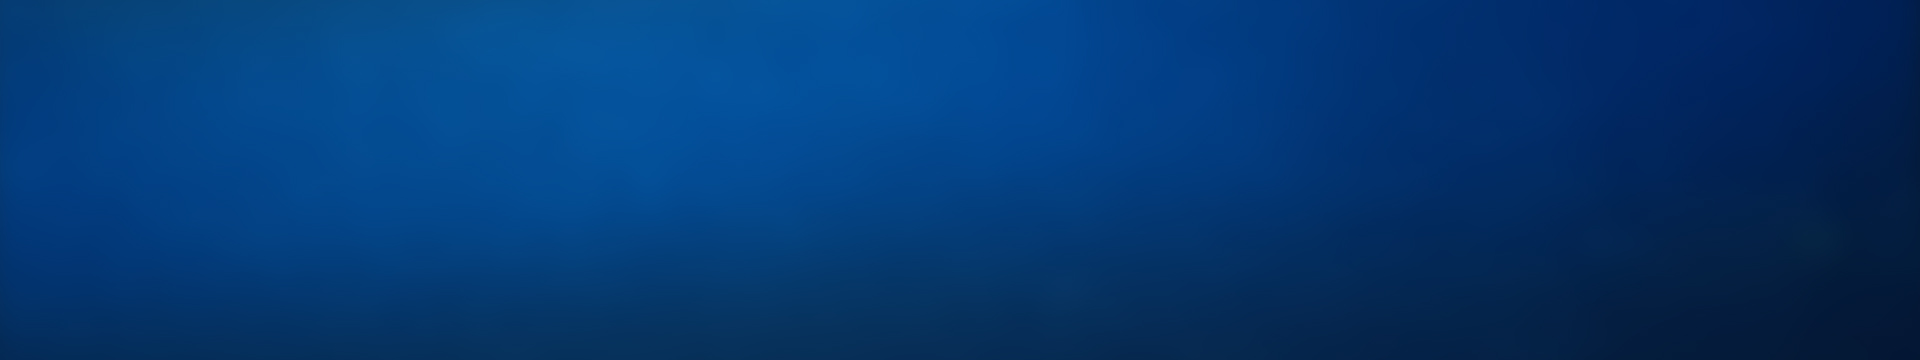 home_banner_image